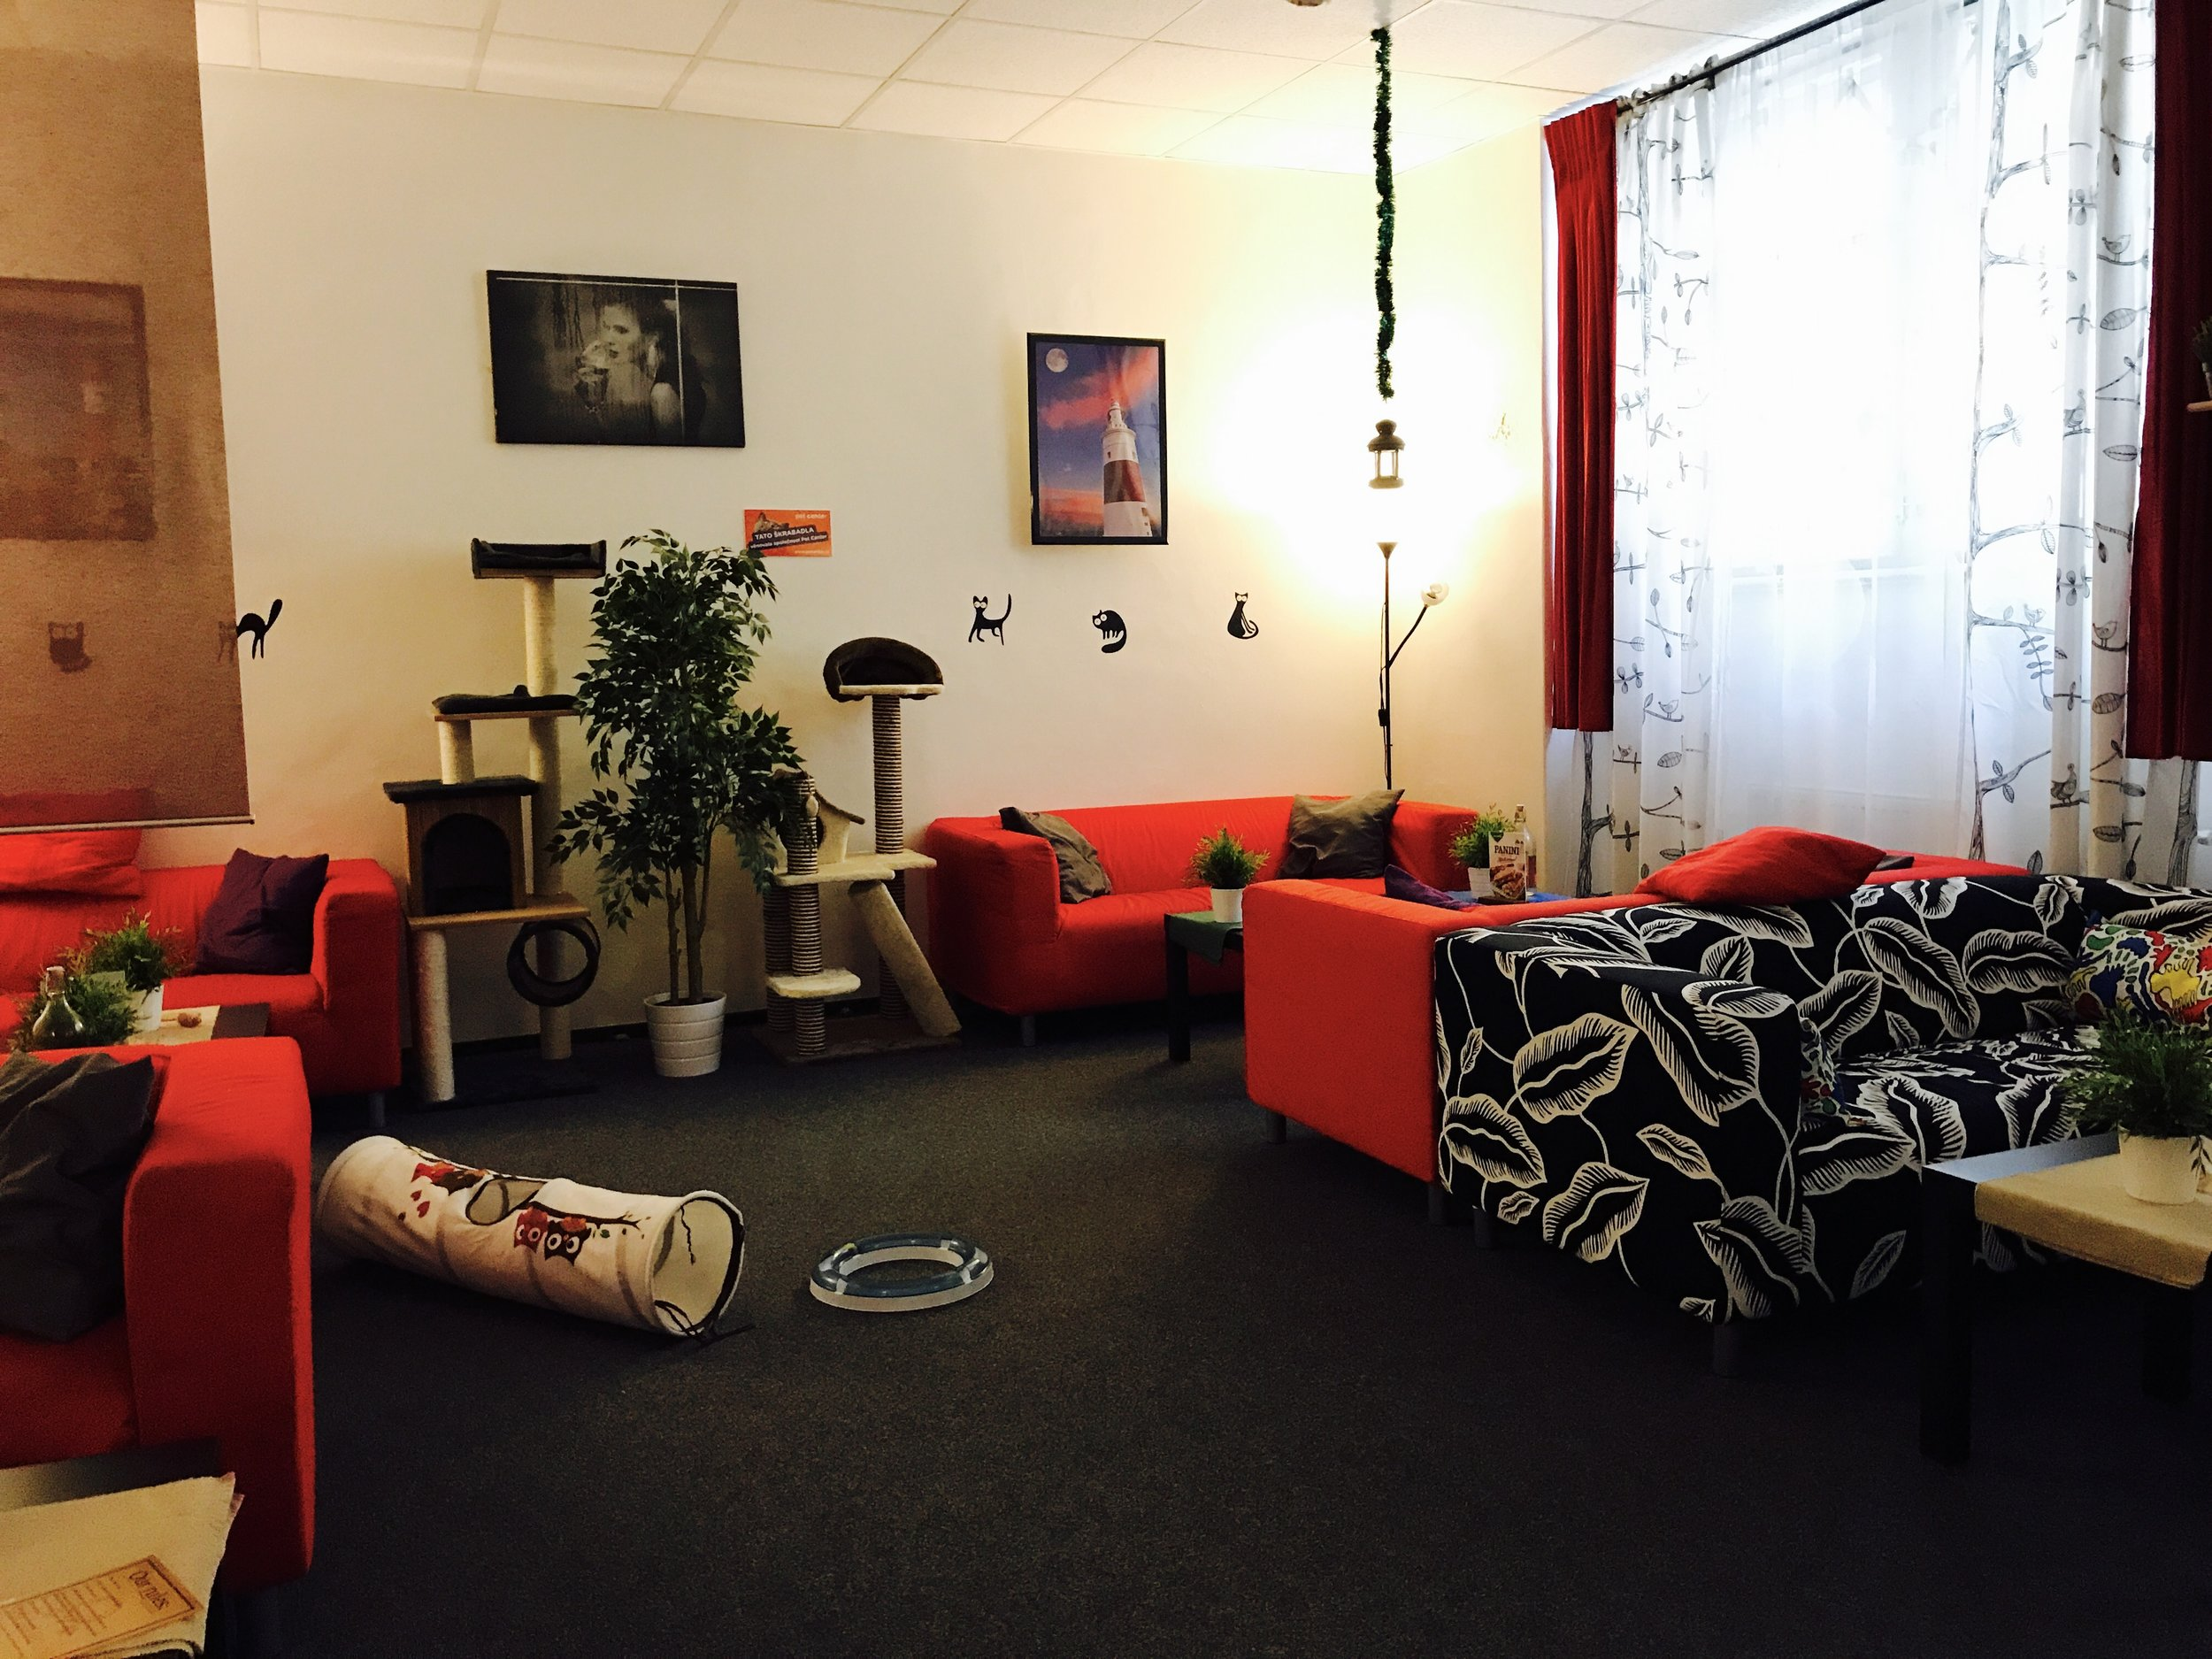 Cat Cafe Prague is located in New Town, adjacent to popular tourist area Old Town